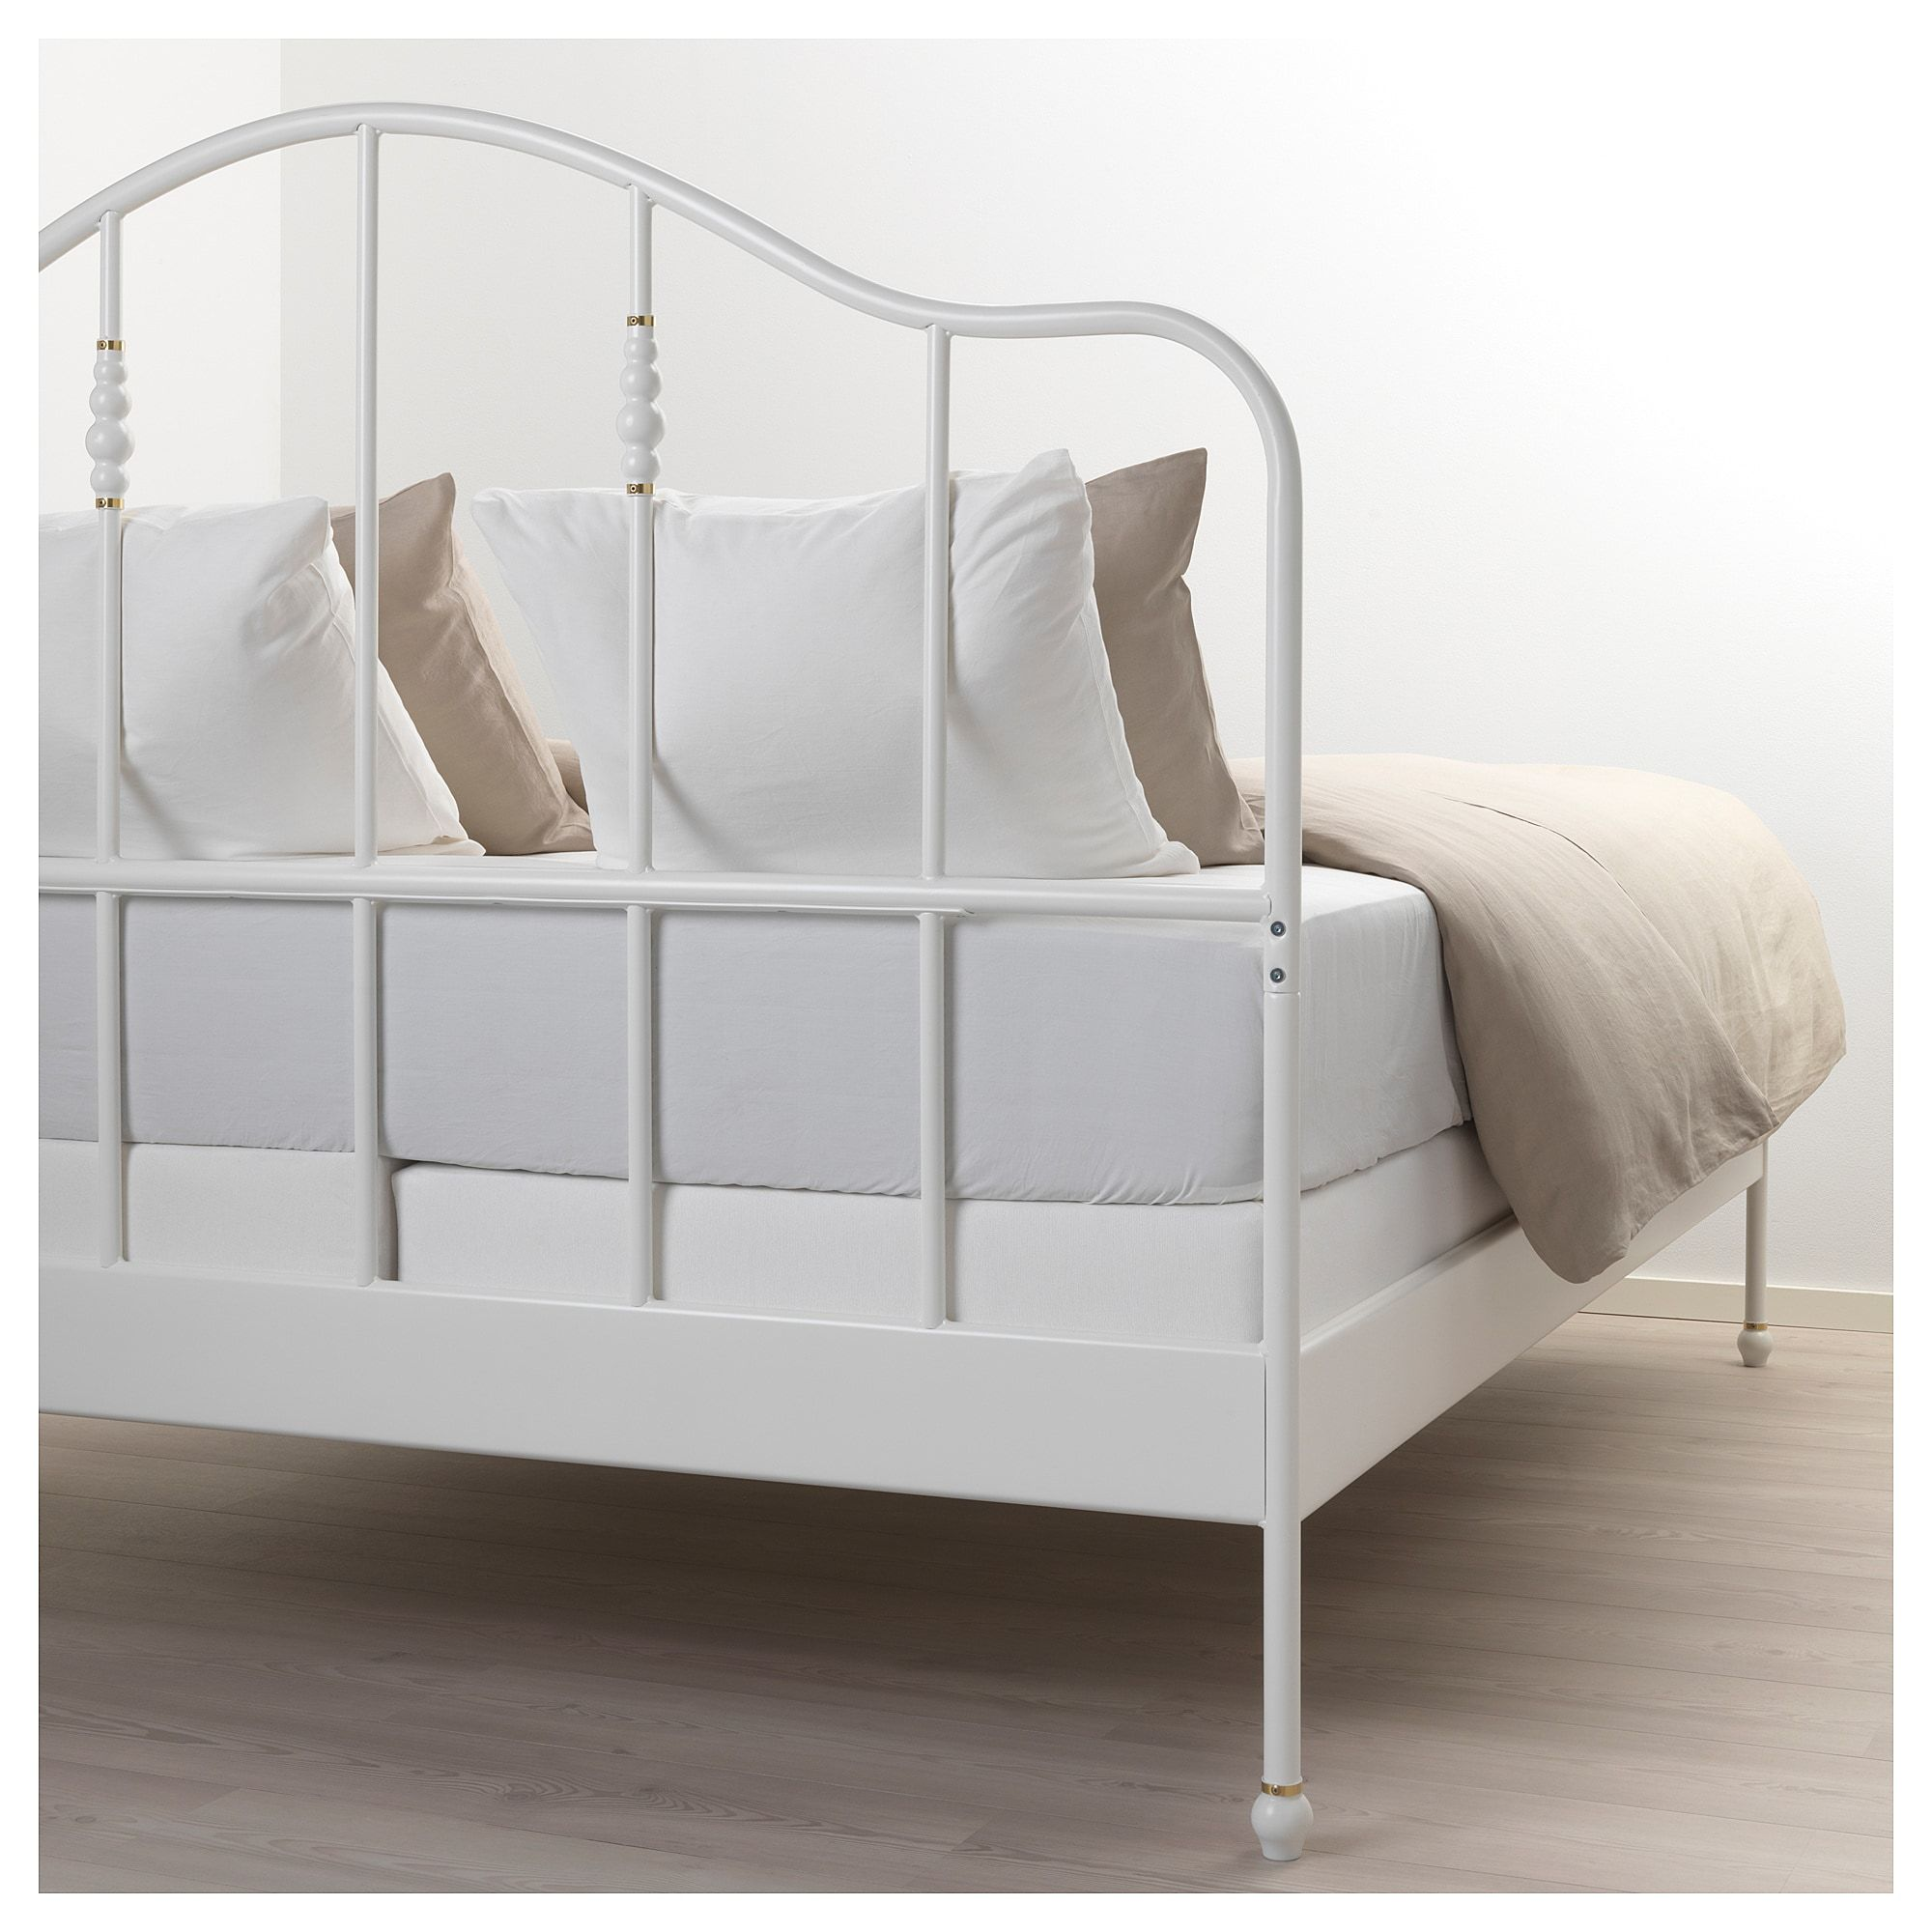 Structure Lit Sagstua Blanc Espevar In 2019 Products Bed